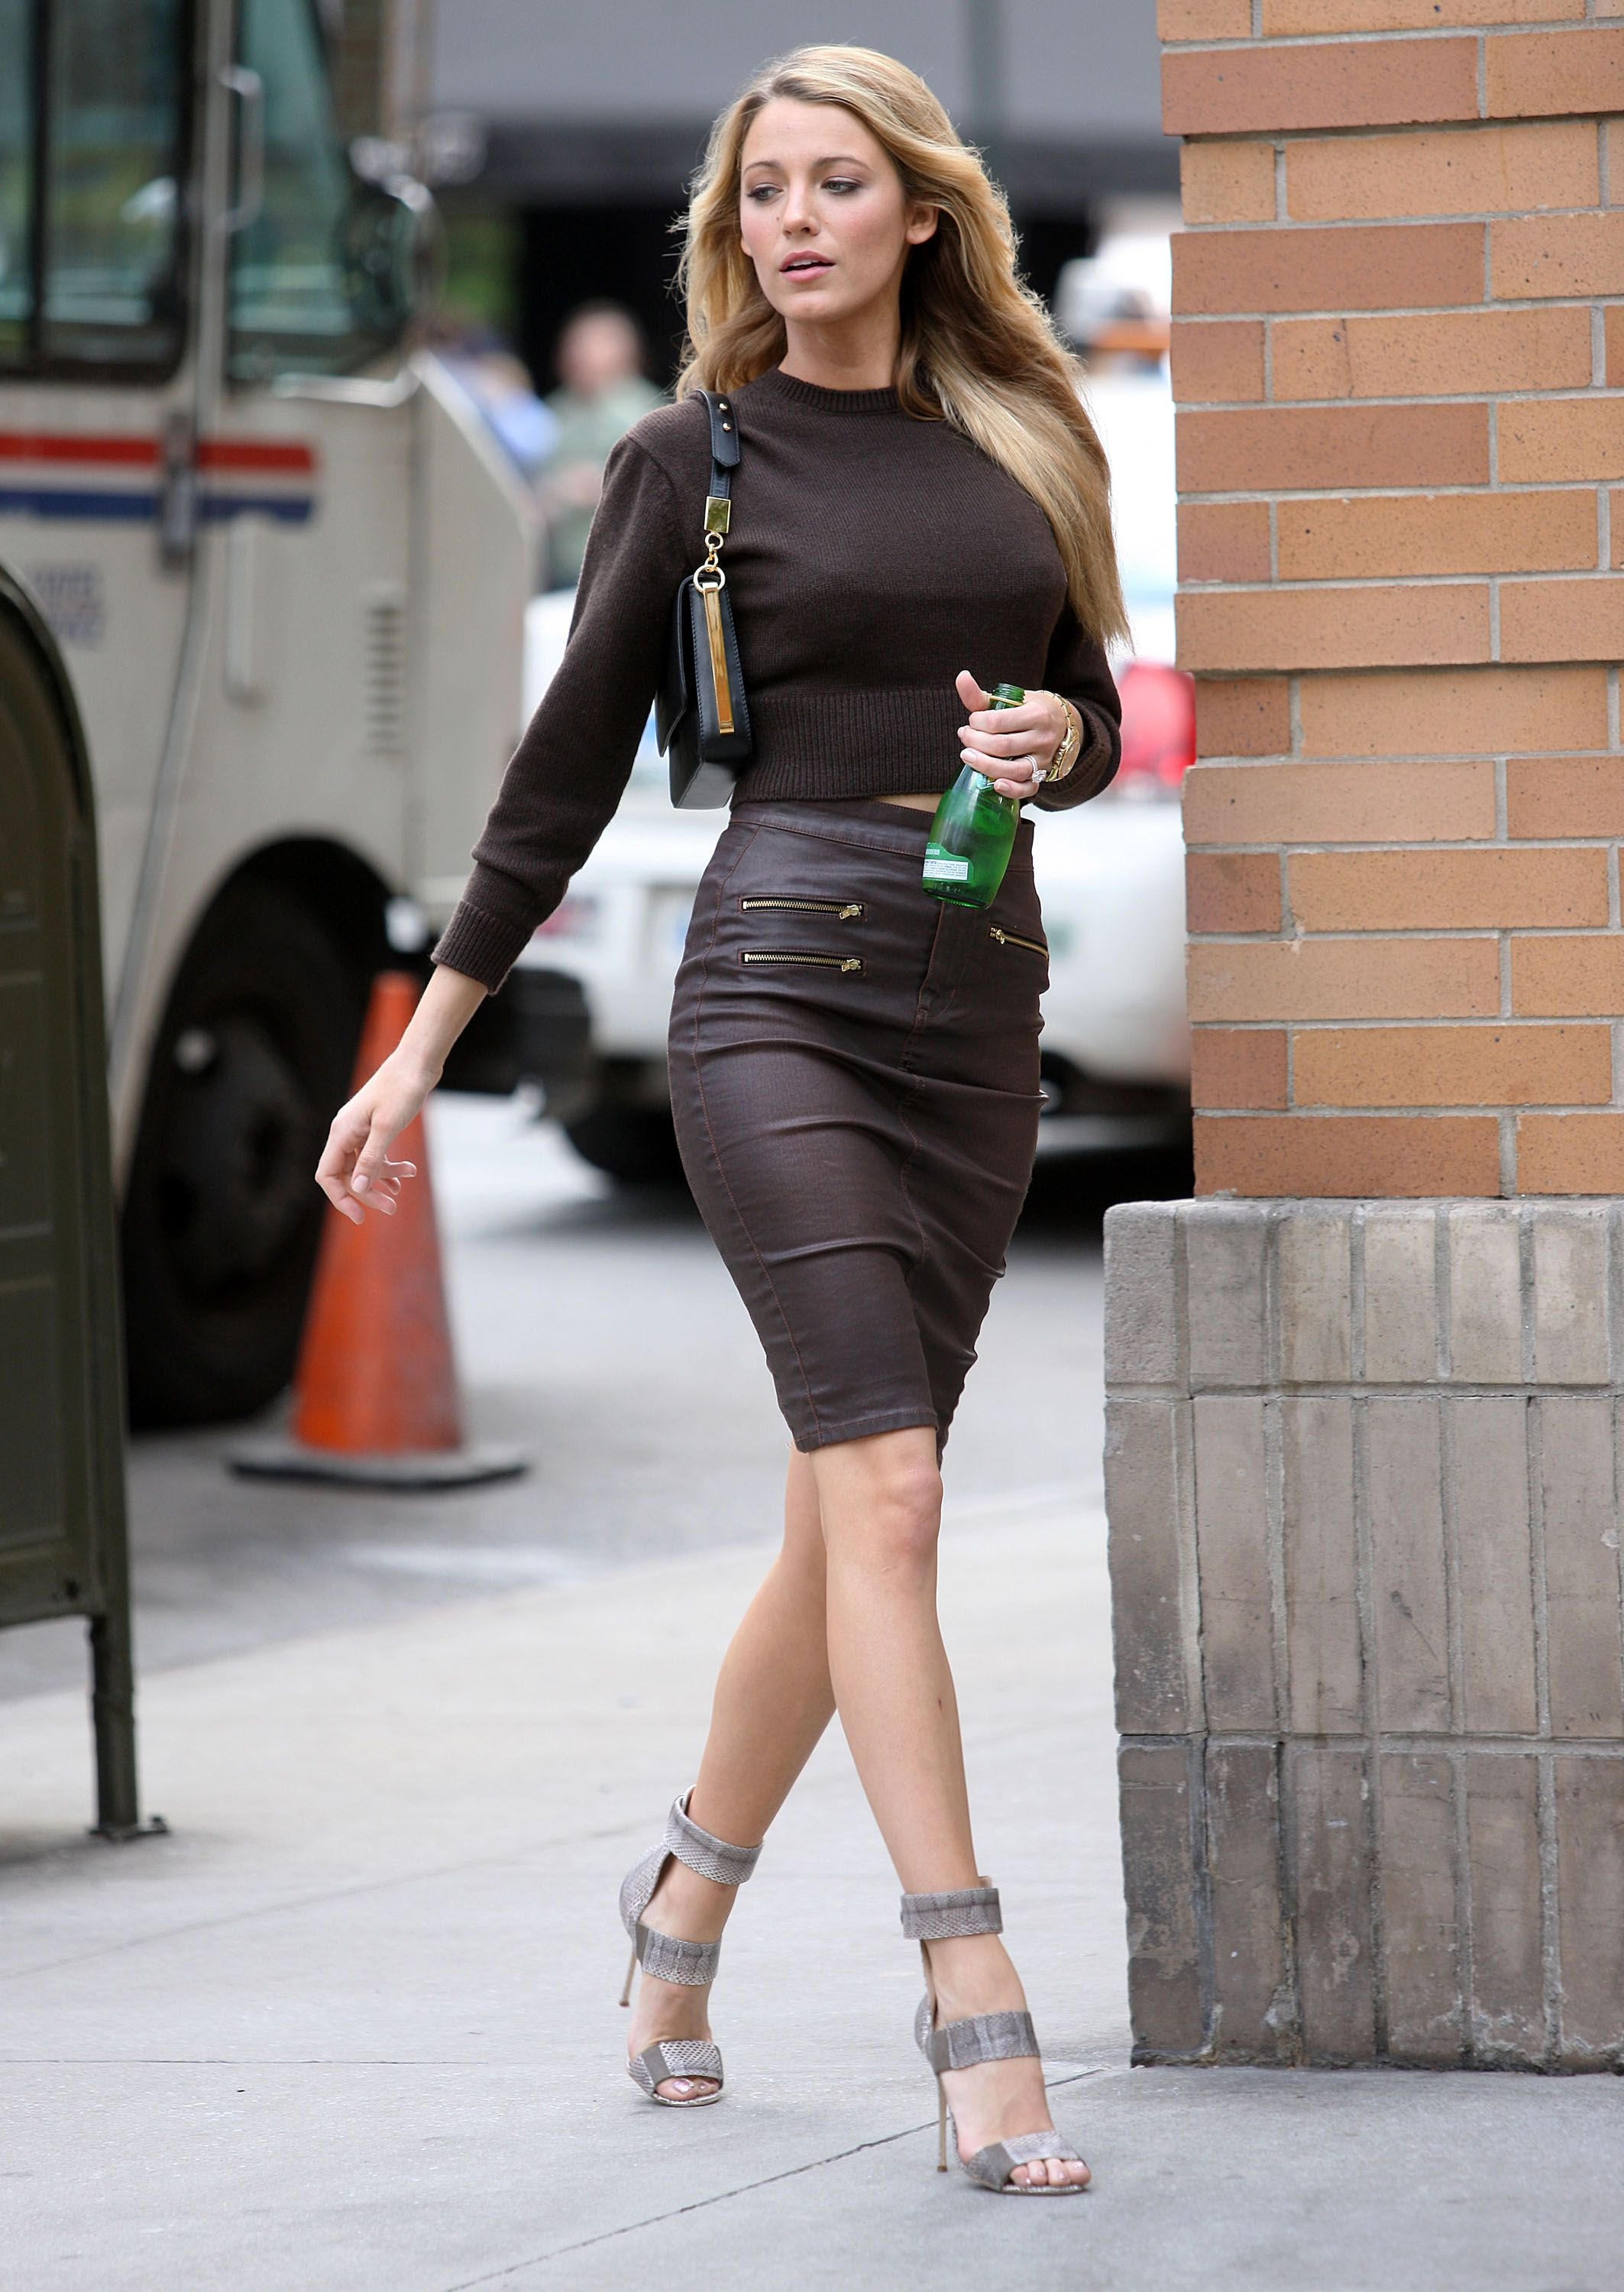 Blake Lively Style - #leather #highwaisted #skirt #womenswear #fall #outfit #celebrity #actress